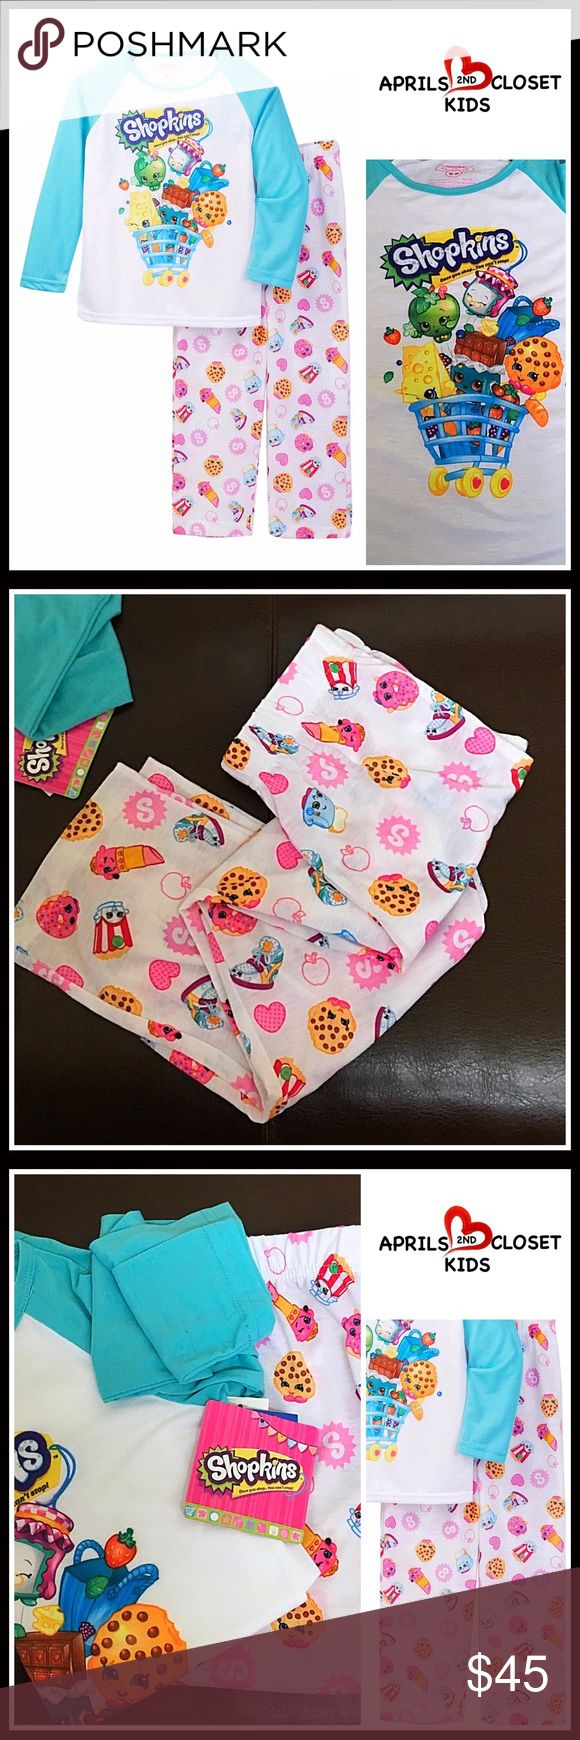 SHOPKINS❤️GIFT PERECT❤️PAJAMAS SET Little Girls NEW WITH TAGS  SHOPKINS PAJAMAS SET Little Girls  * Super soft fabric  * 2-piece set   * Consumer Product Safety approved   * Scoop neck, long sleeves top  * SHOPKINS hereos print front  * Elasticized waist & Allover print bottom   Fabric: 100% polyester Color: Multi SEARCH# 🚫No Trades🚫 ✅ Offers Considered*✅ *Please use the blue 'offer' button to submit an offer. Shopkins Pajamas Pajama Sets